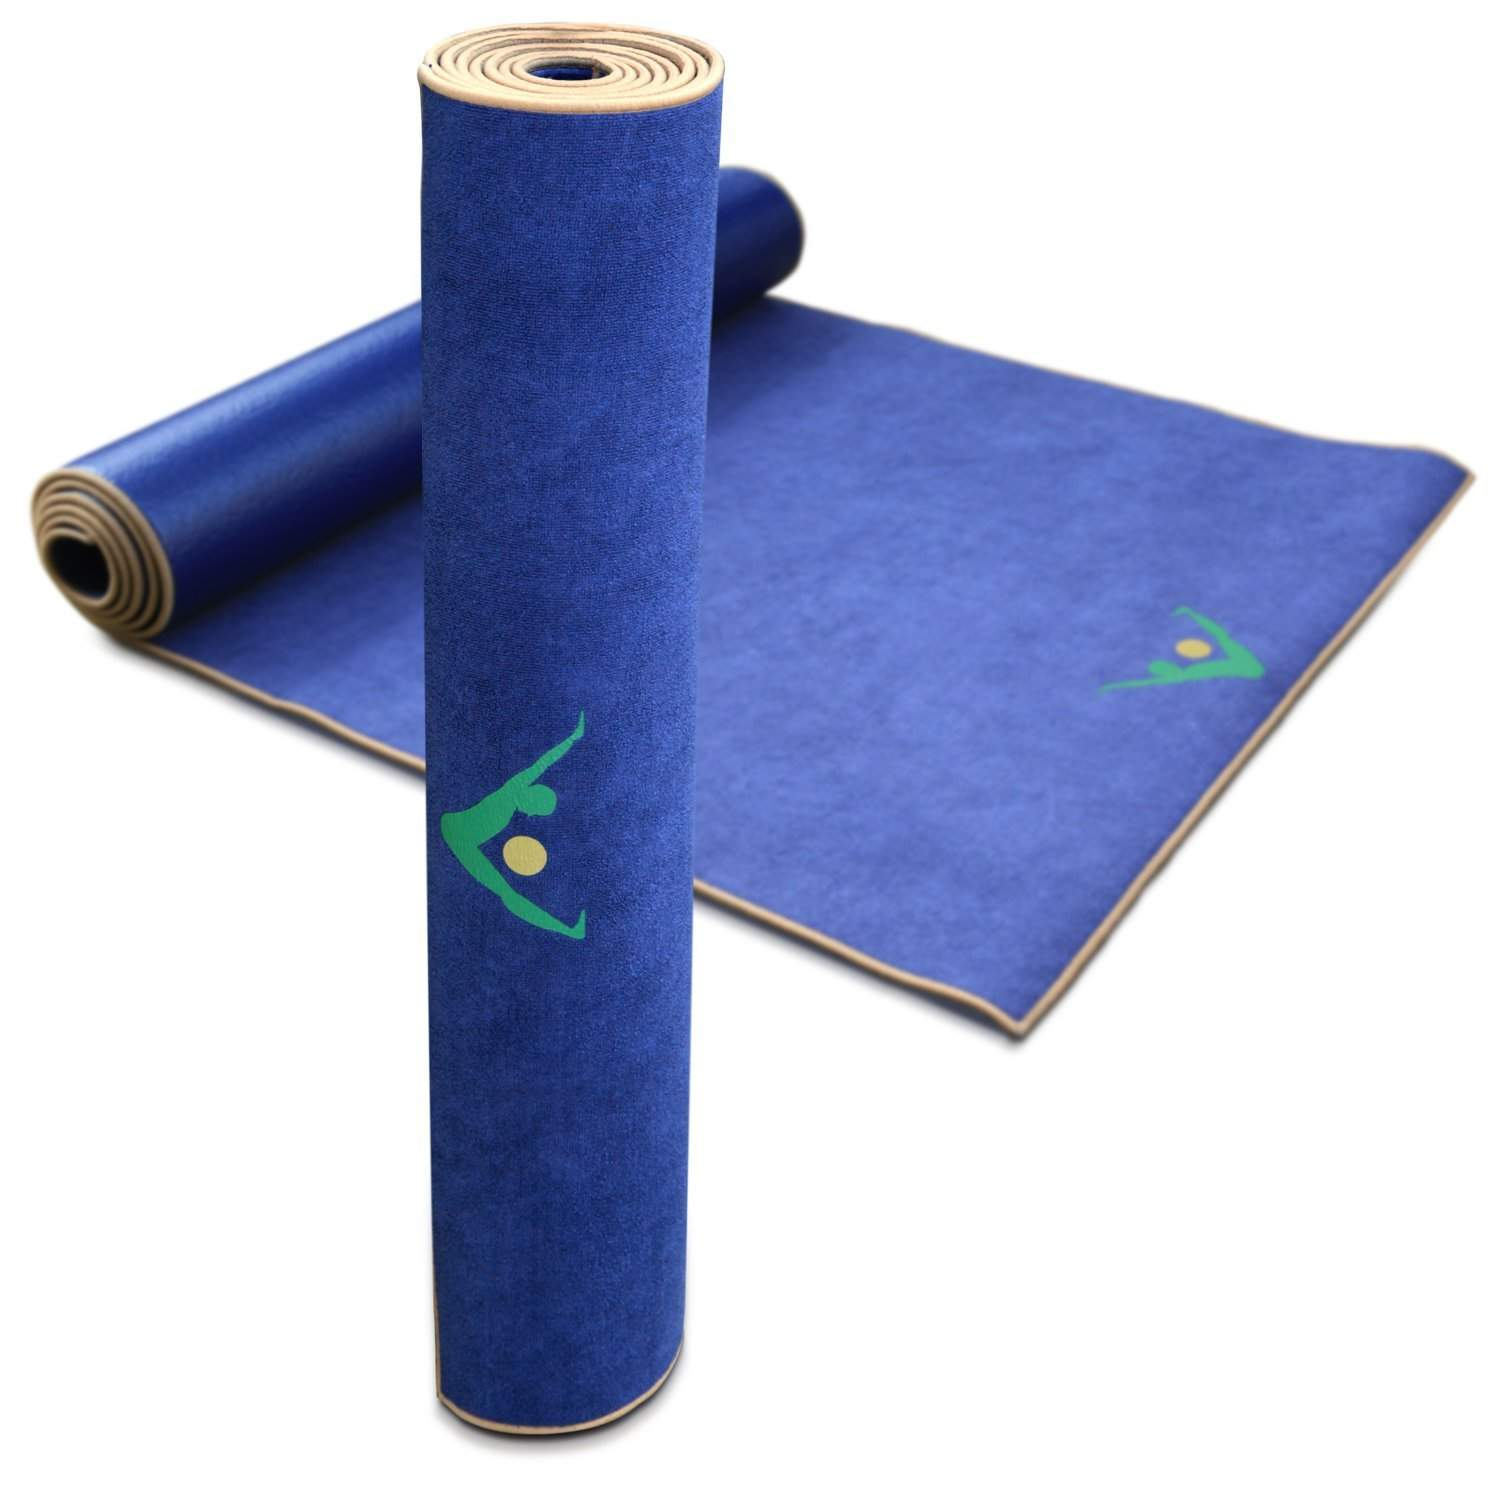 Aurorae Premium Non Slip Hot Yoga Mat One of the Best Yoga Mats Available